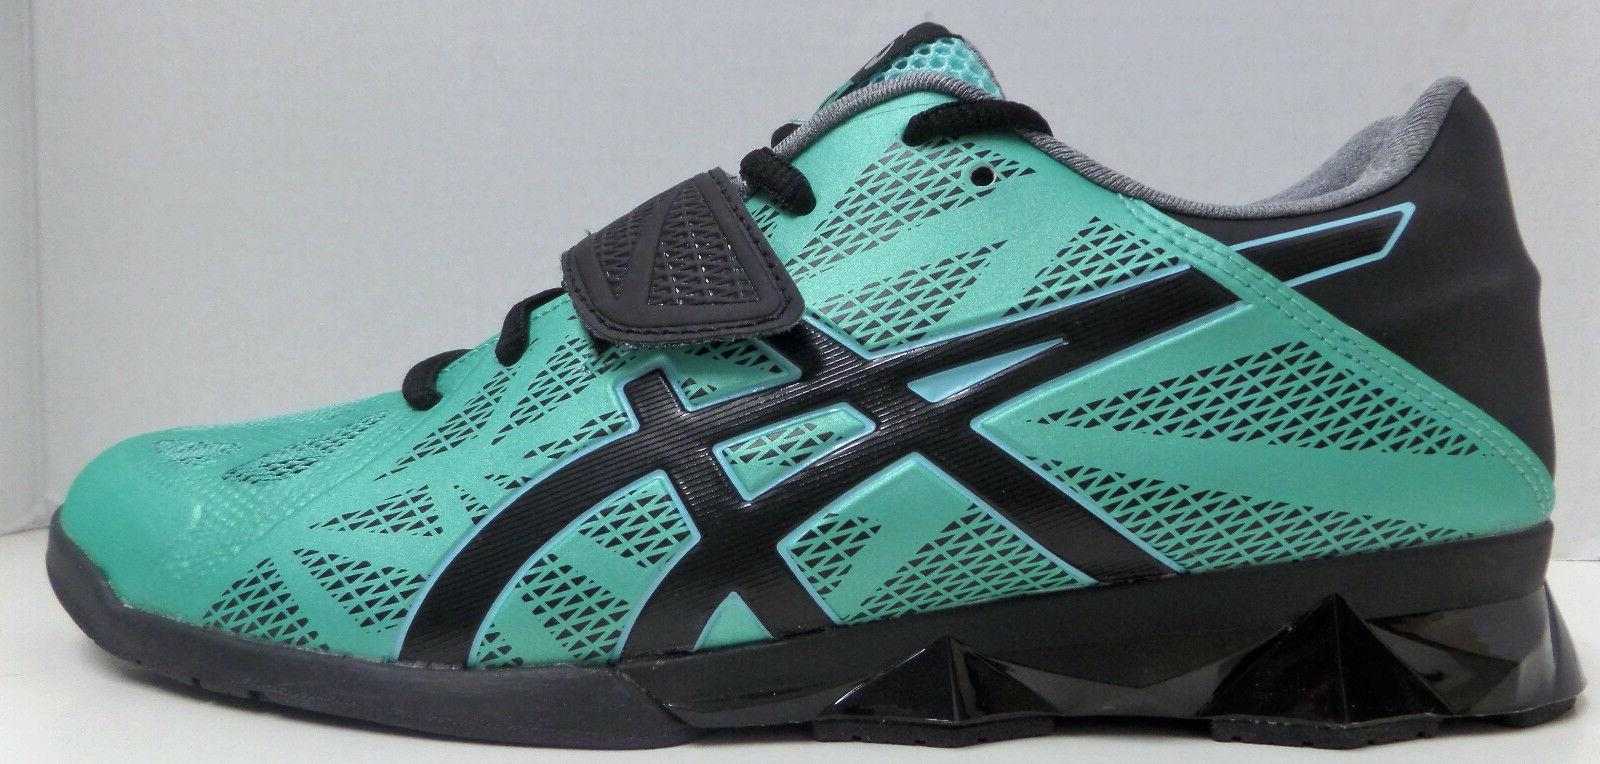 Asics Weight Lifting Womens Shoes Teal/Black/Silver